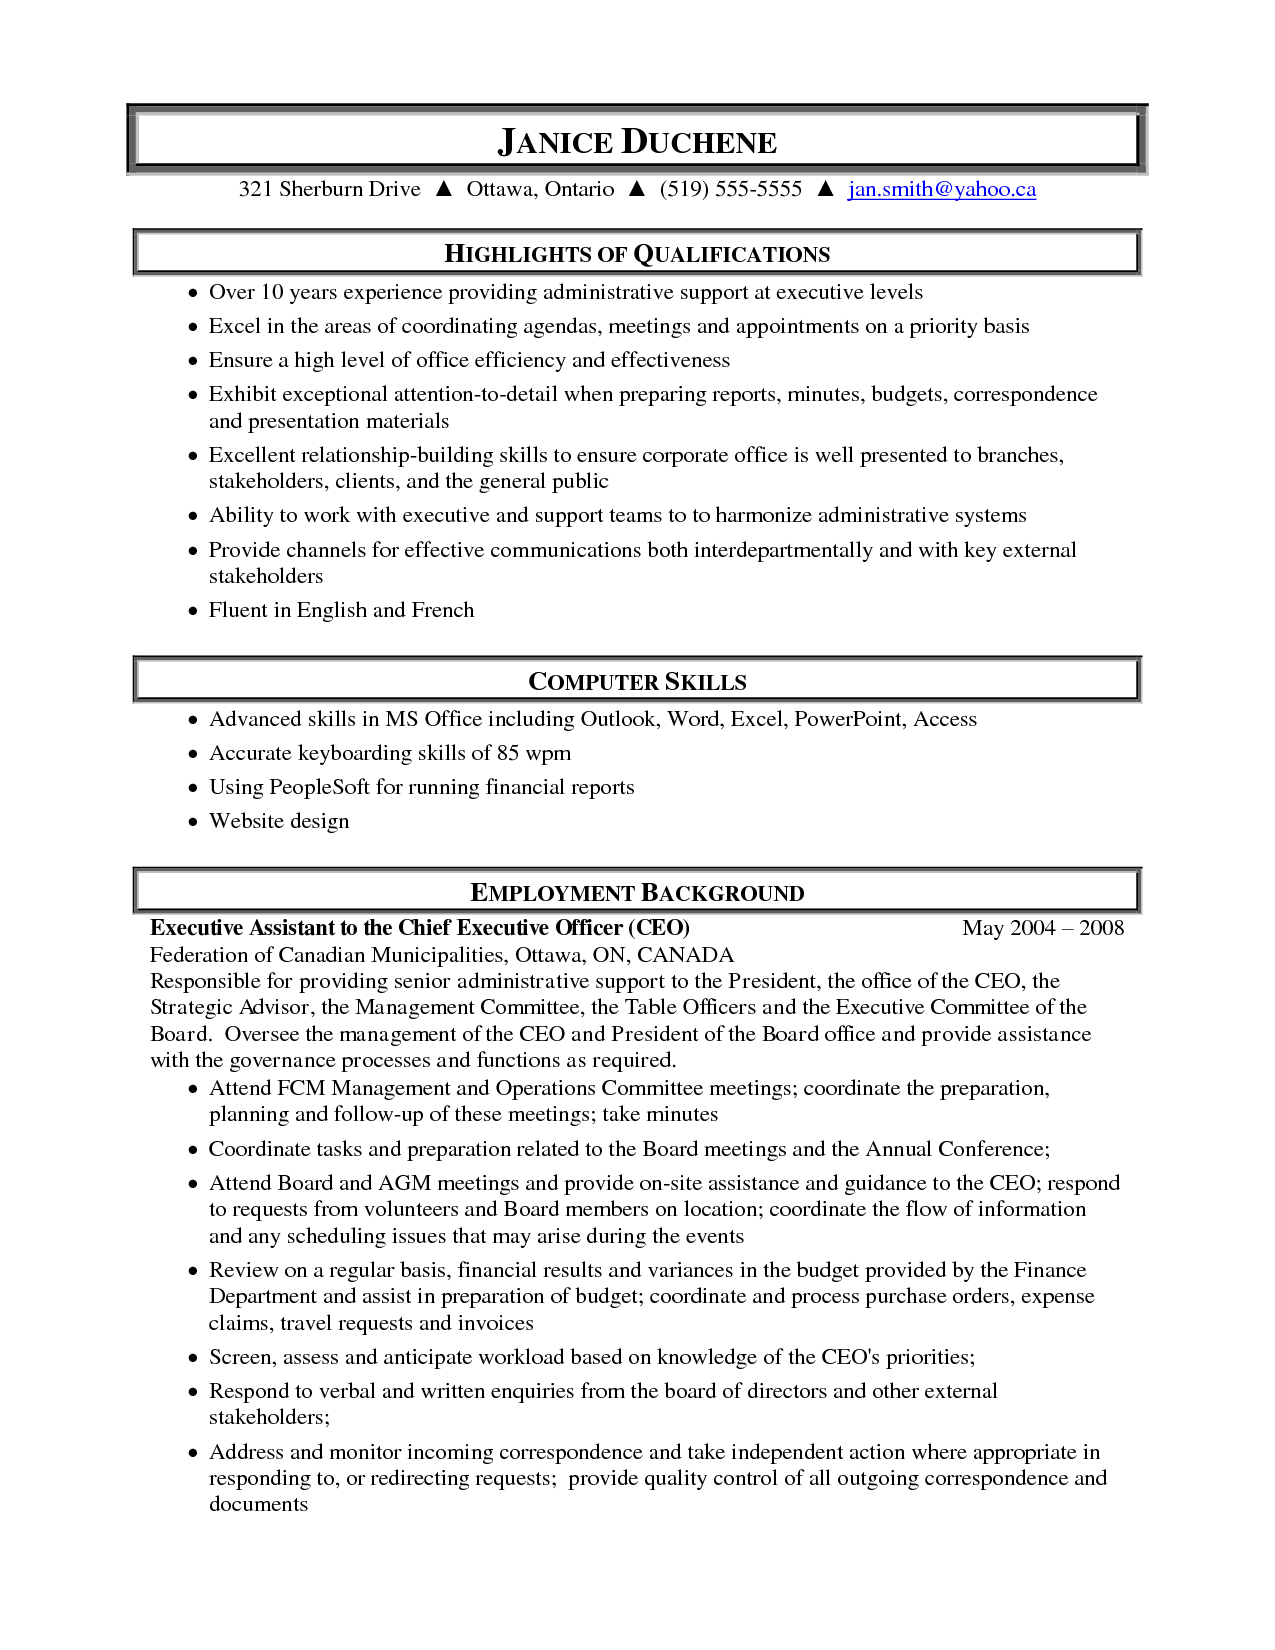 Office Assistant Resume Skills Resume Ideas – Administrative Assistant Resume